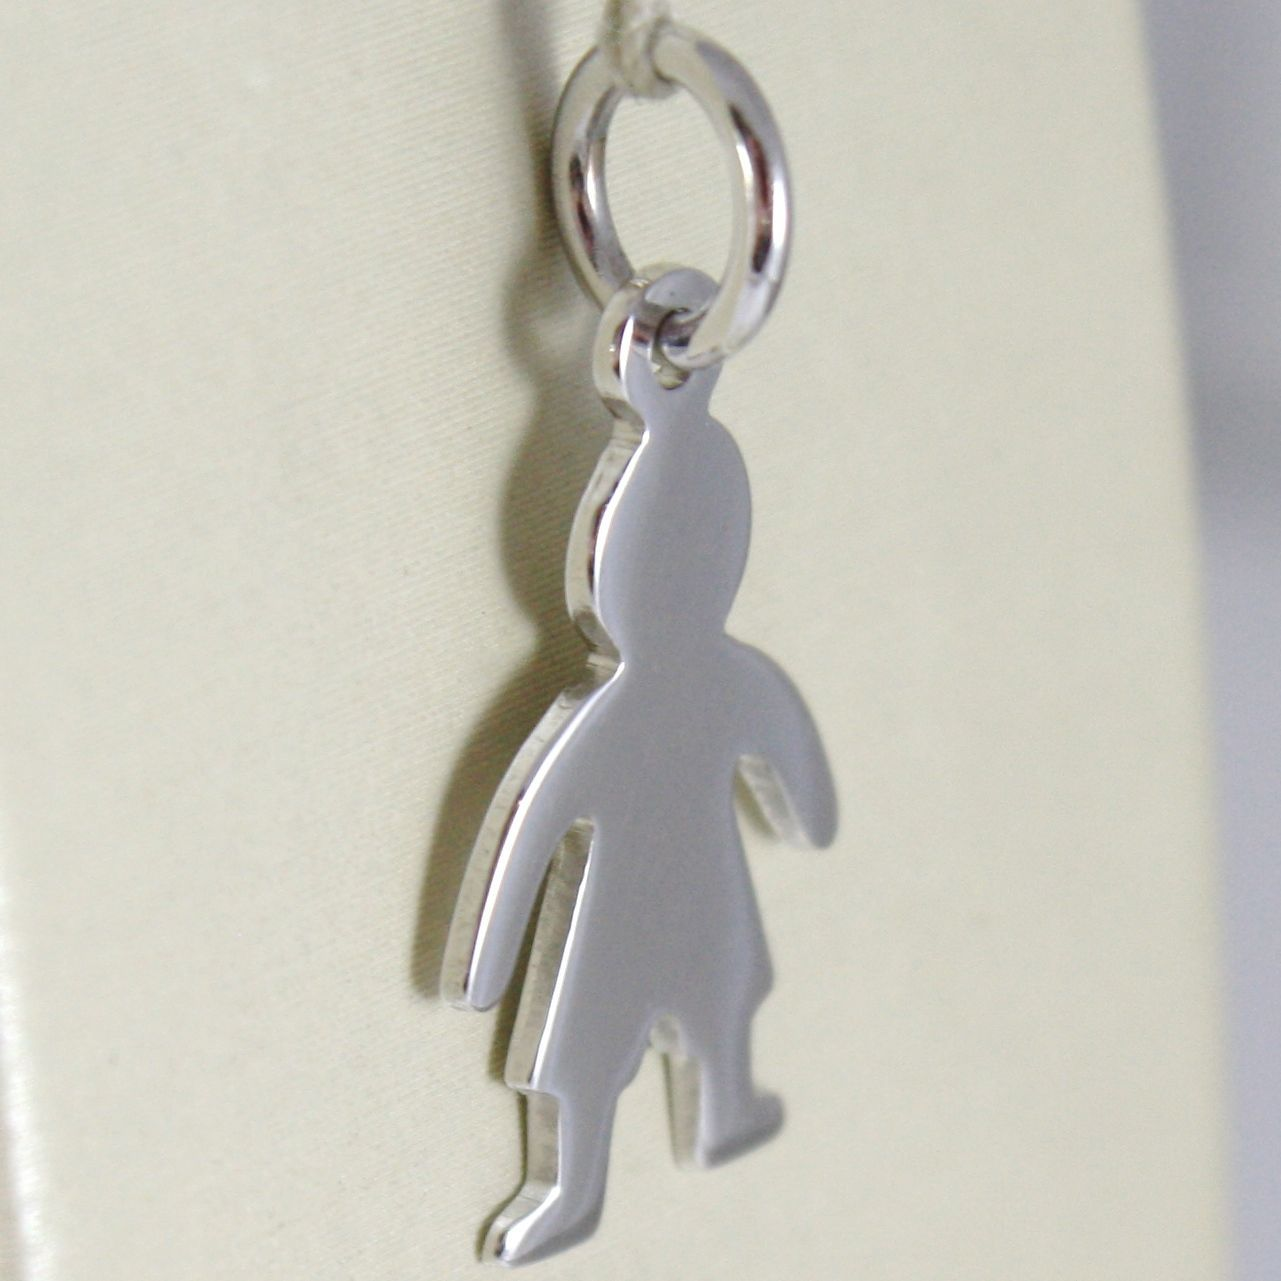 WHITE GOLD PENDANT 750 18K, CHILD, CHILD LONG 2.3 CM, PLATE FOR INCISION